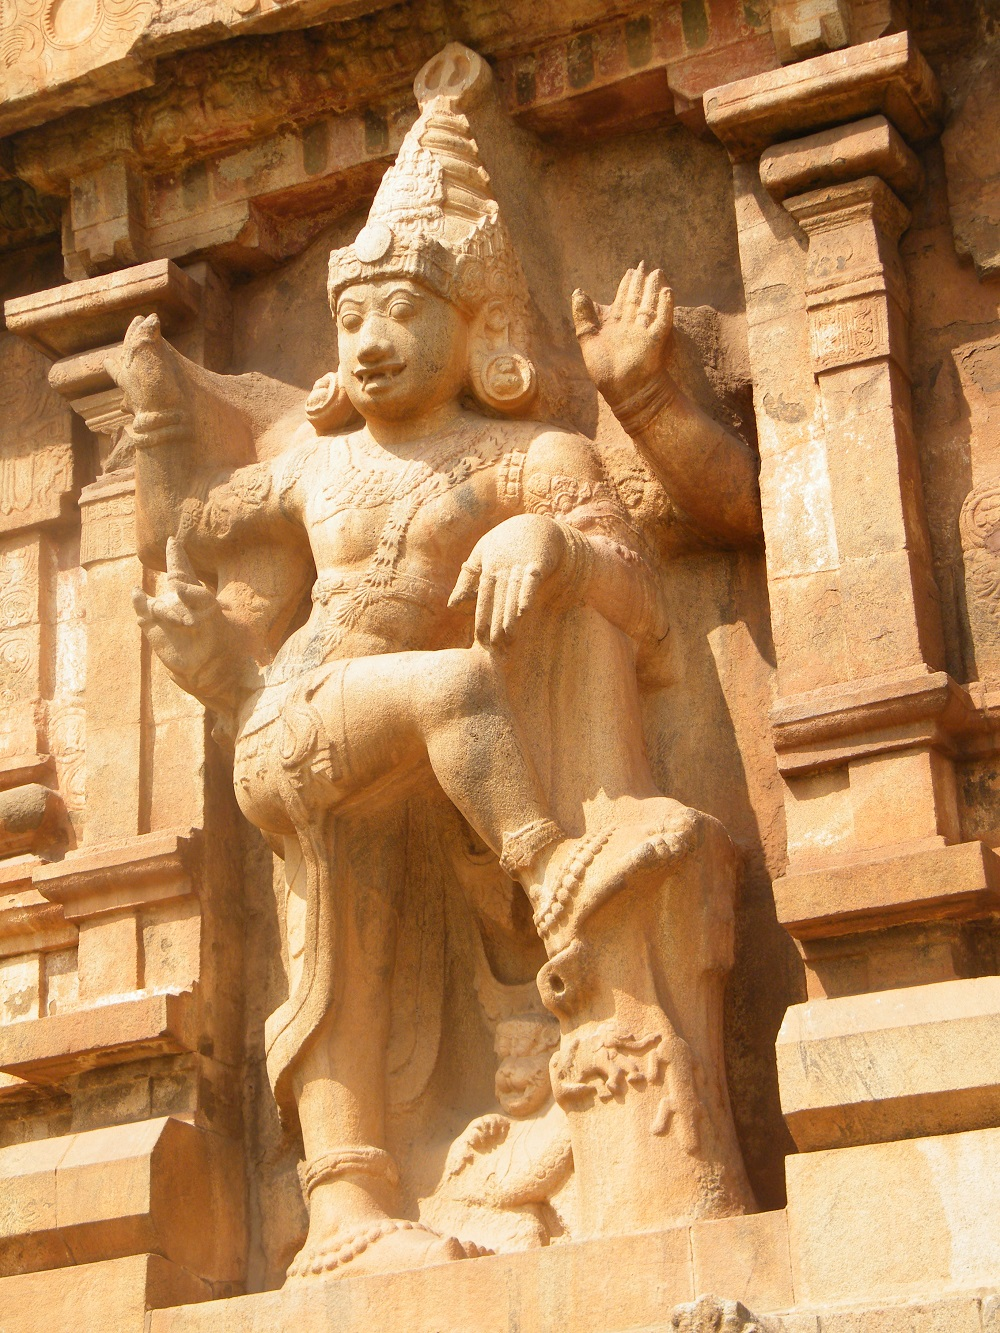 One of the many carvings on the walls of Brihedeshwara temple